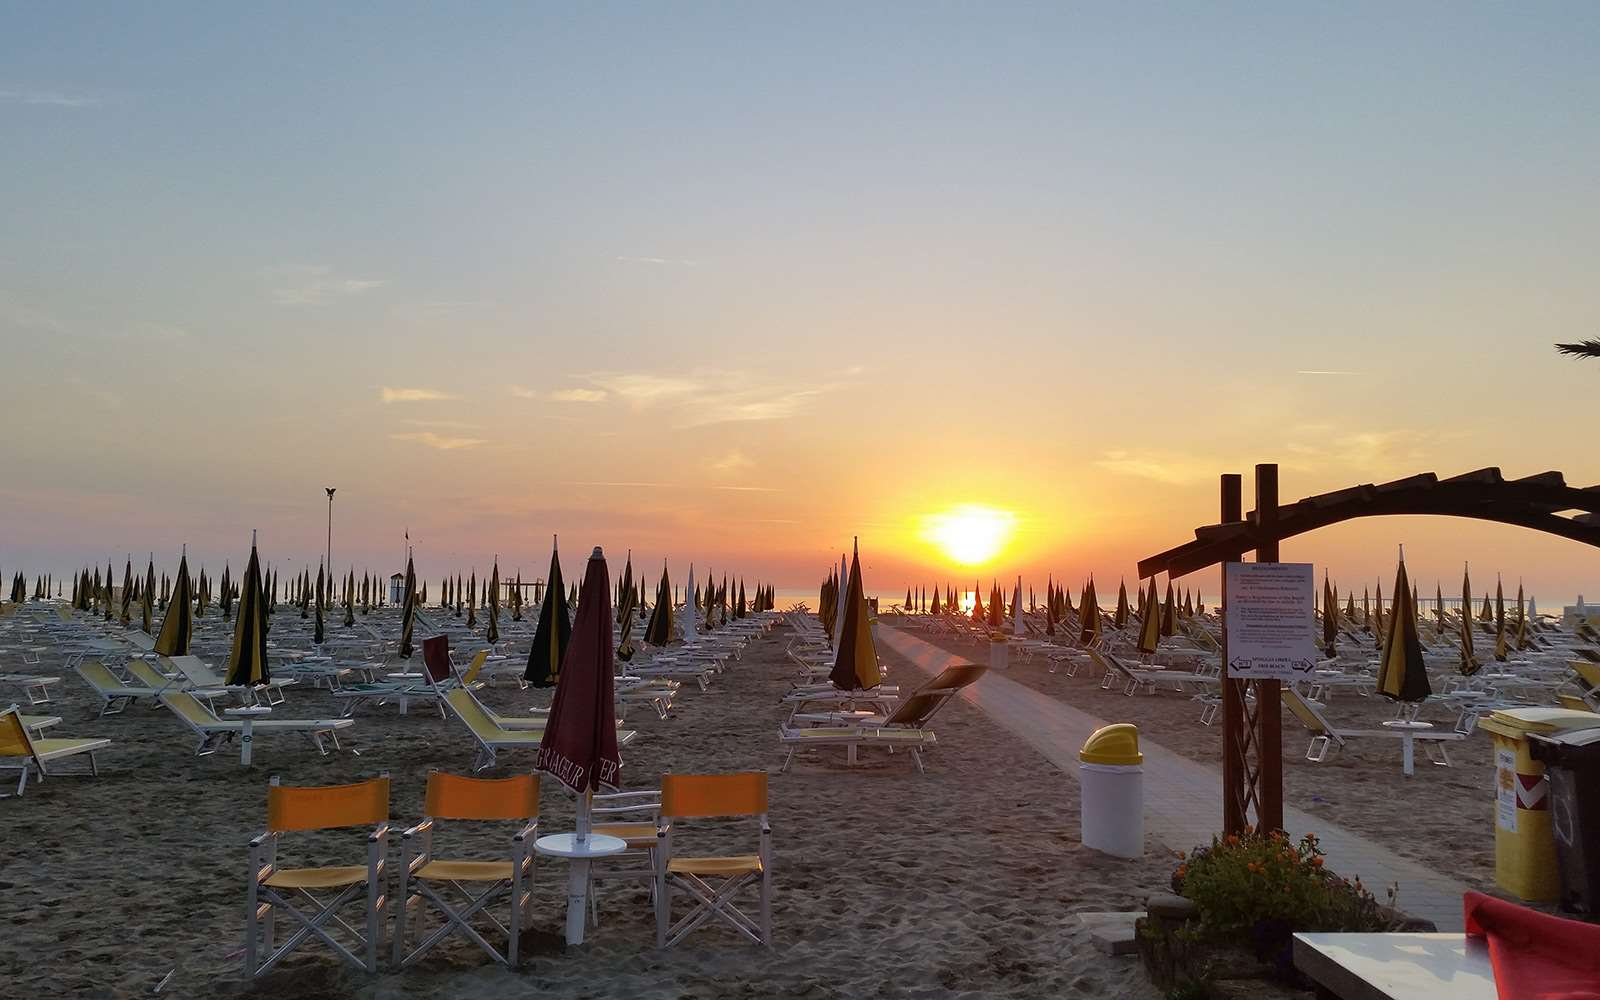 ACCOMMODATION RIMINI RIVIERA, SELECTED 3* HOTELS Our Rimini Riviera hotels are located at walking